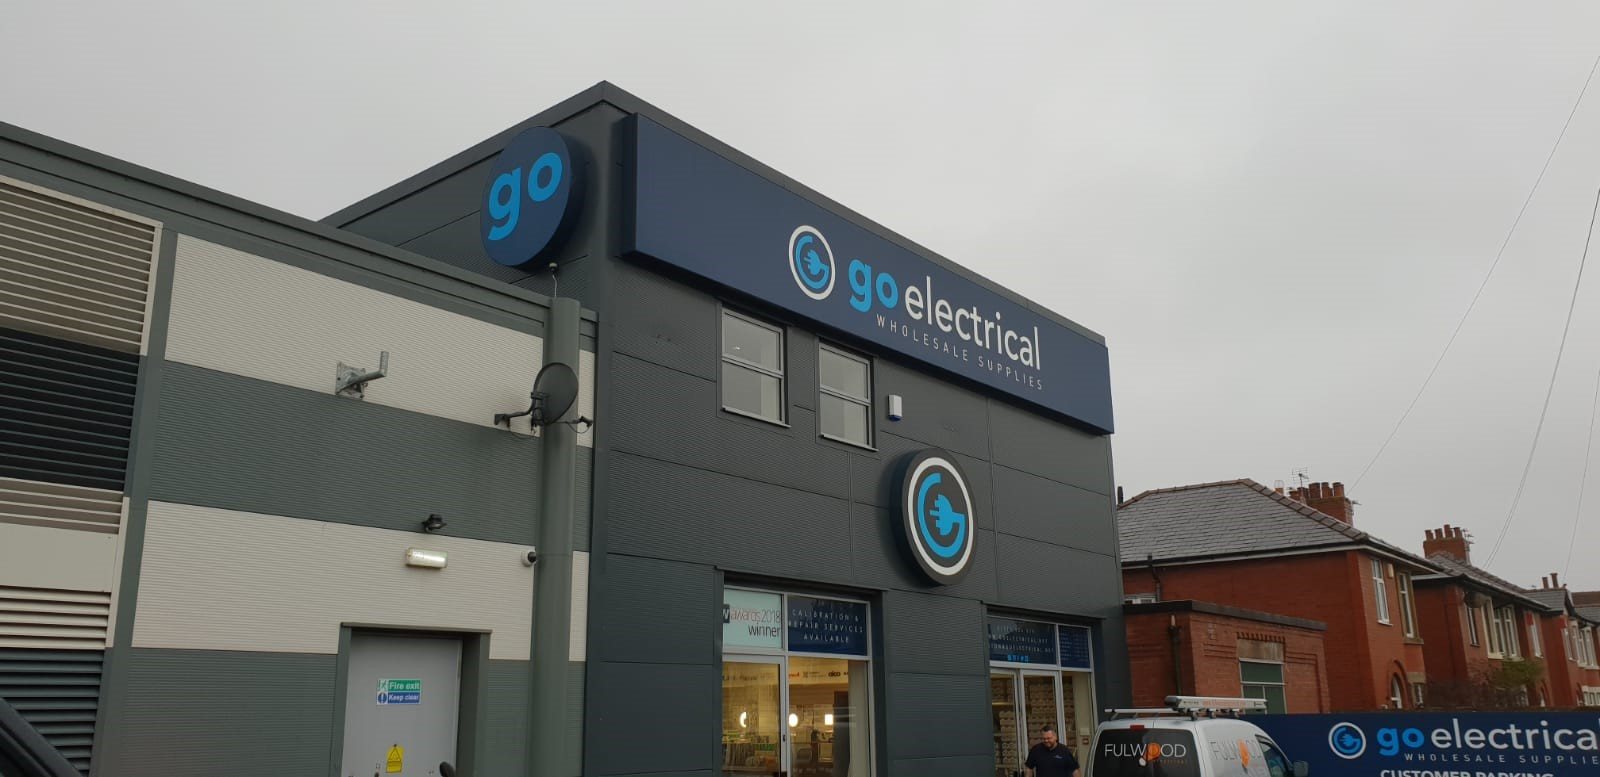 Go Electrical Windermere External Fascia Sign